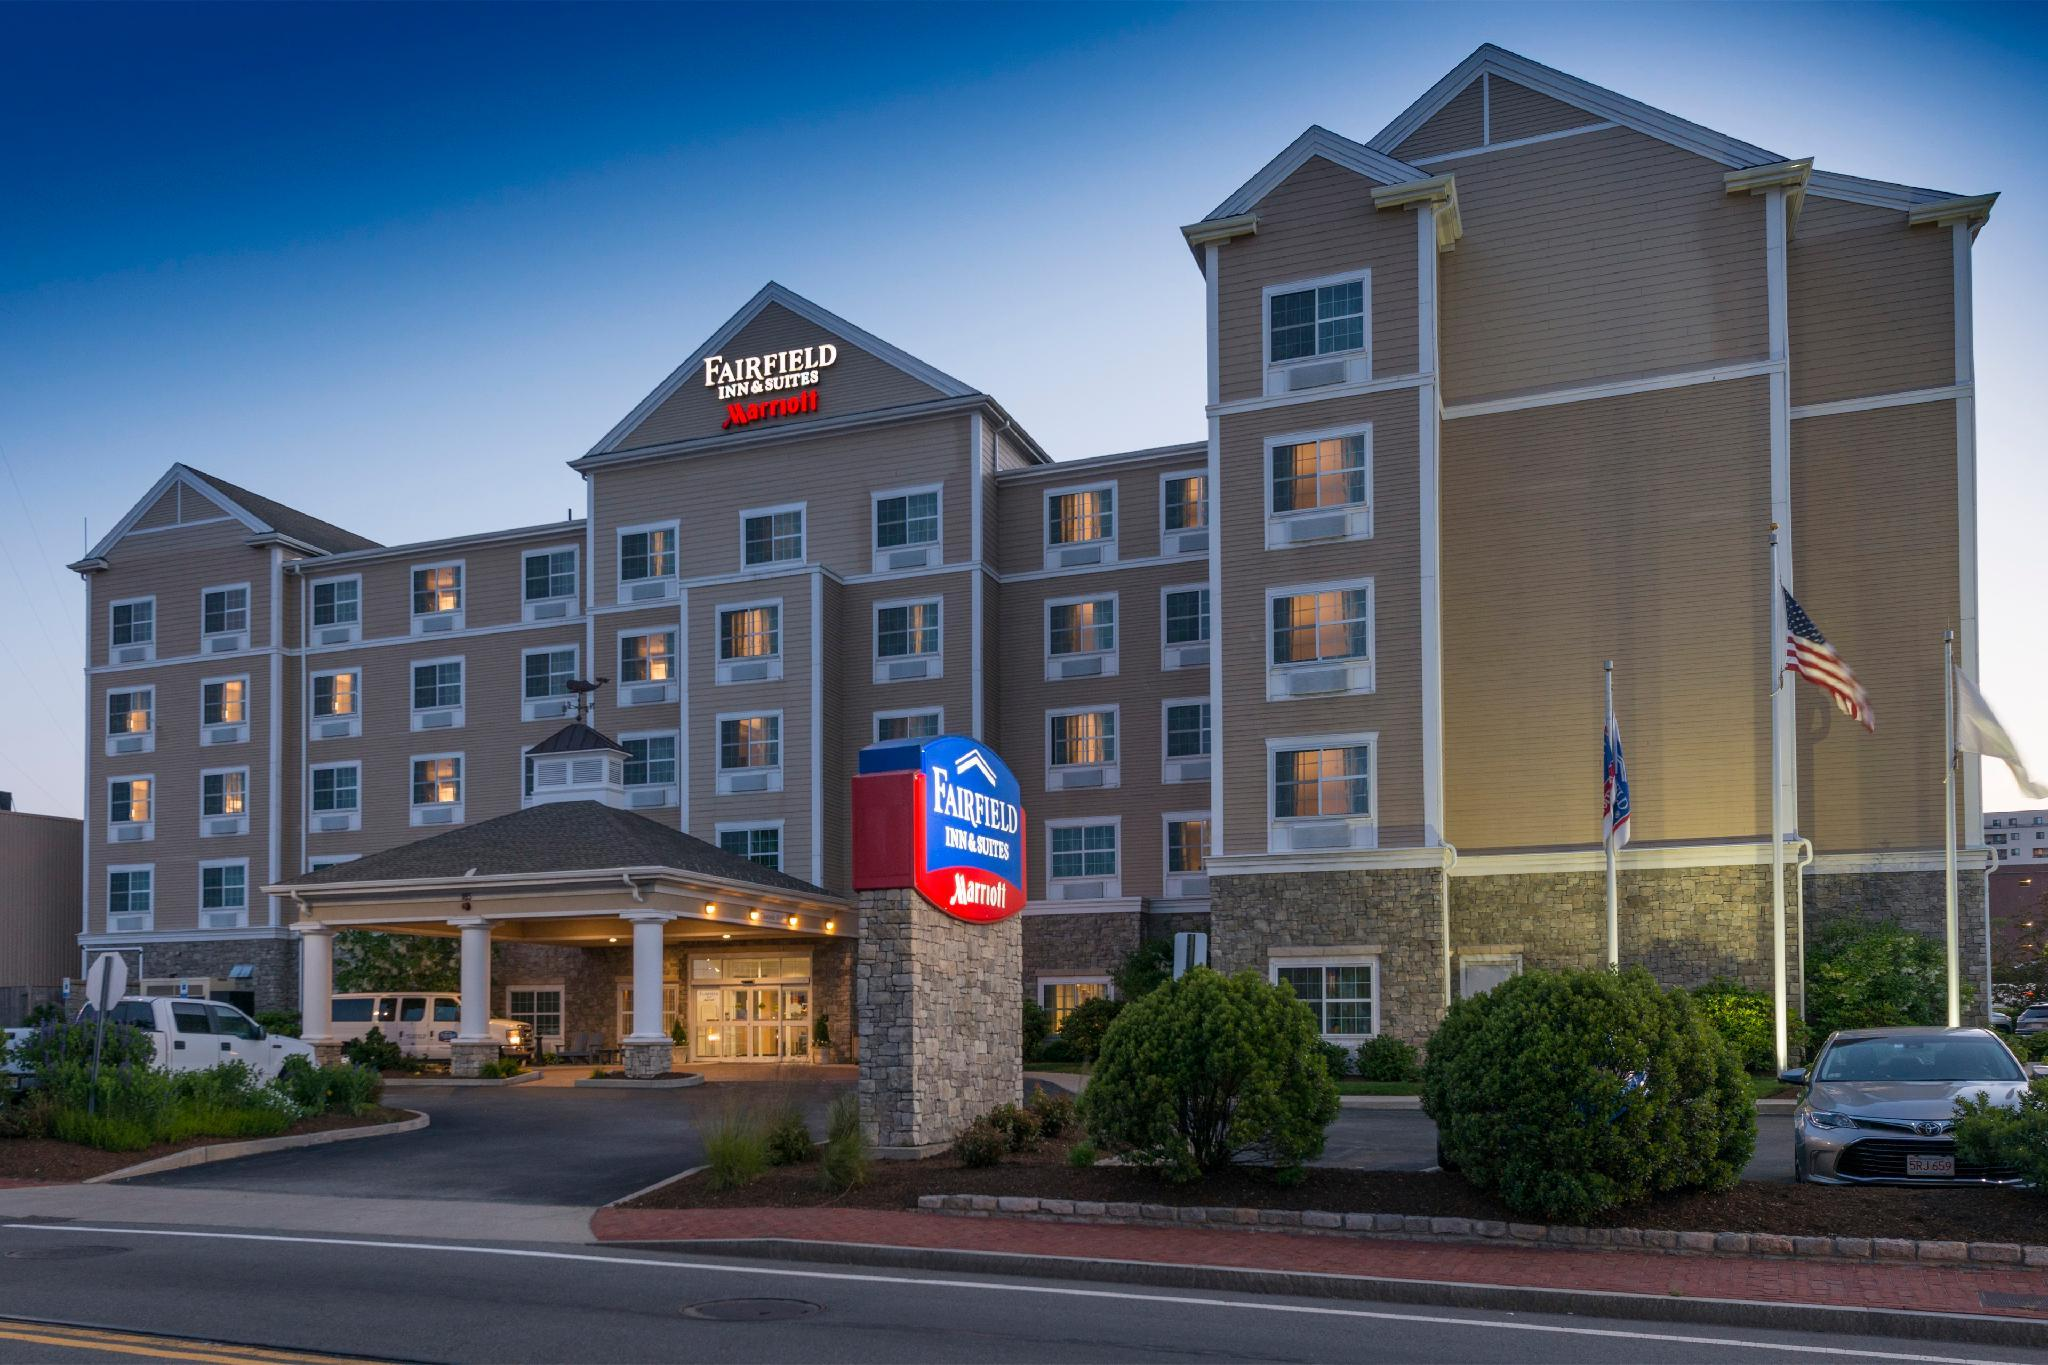 Fairfield Inn And Suites New Bedford